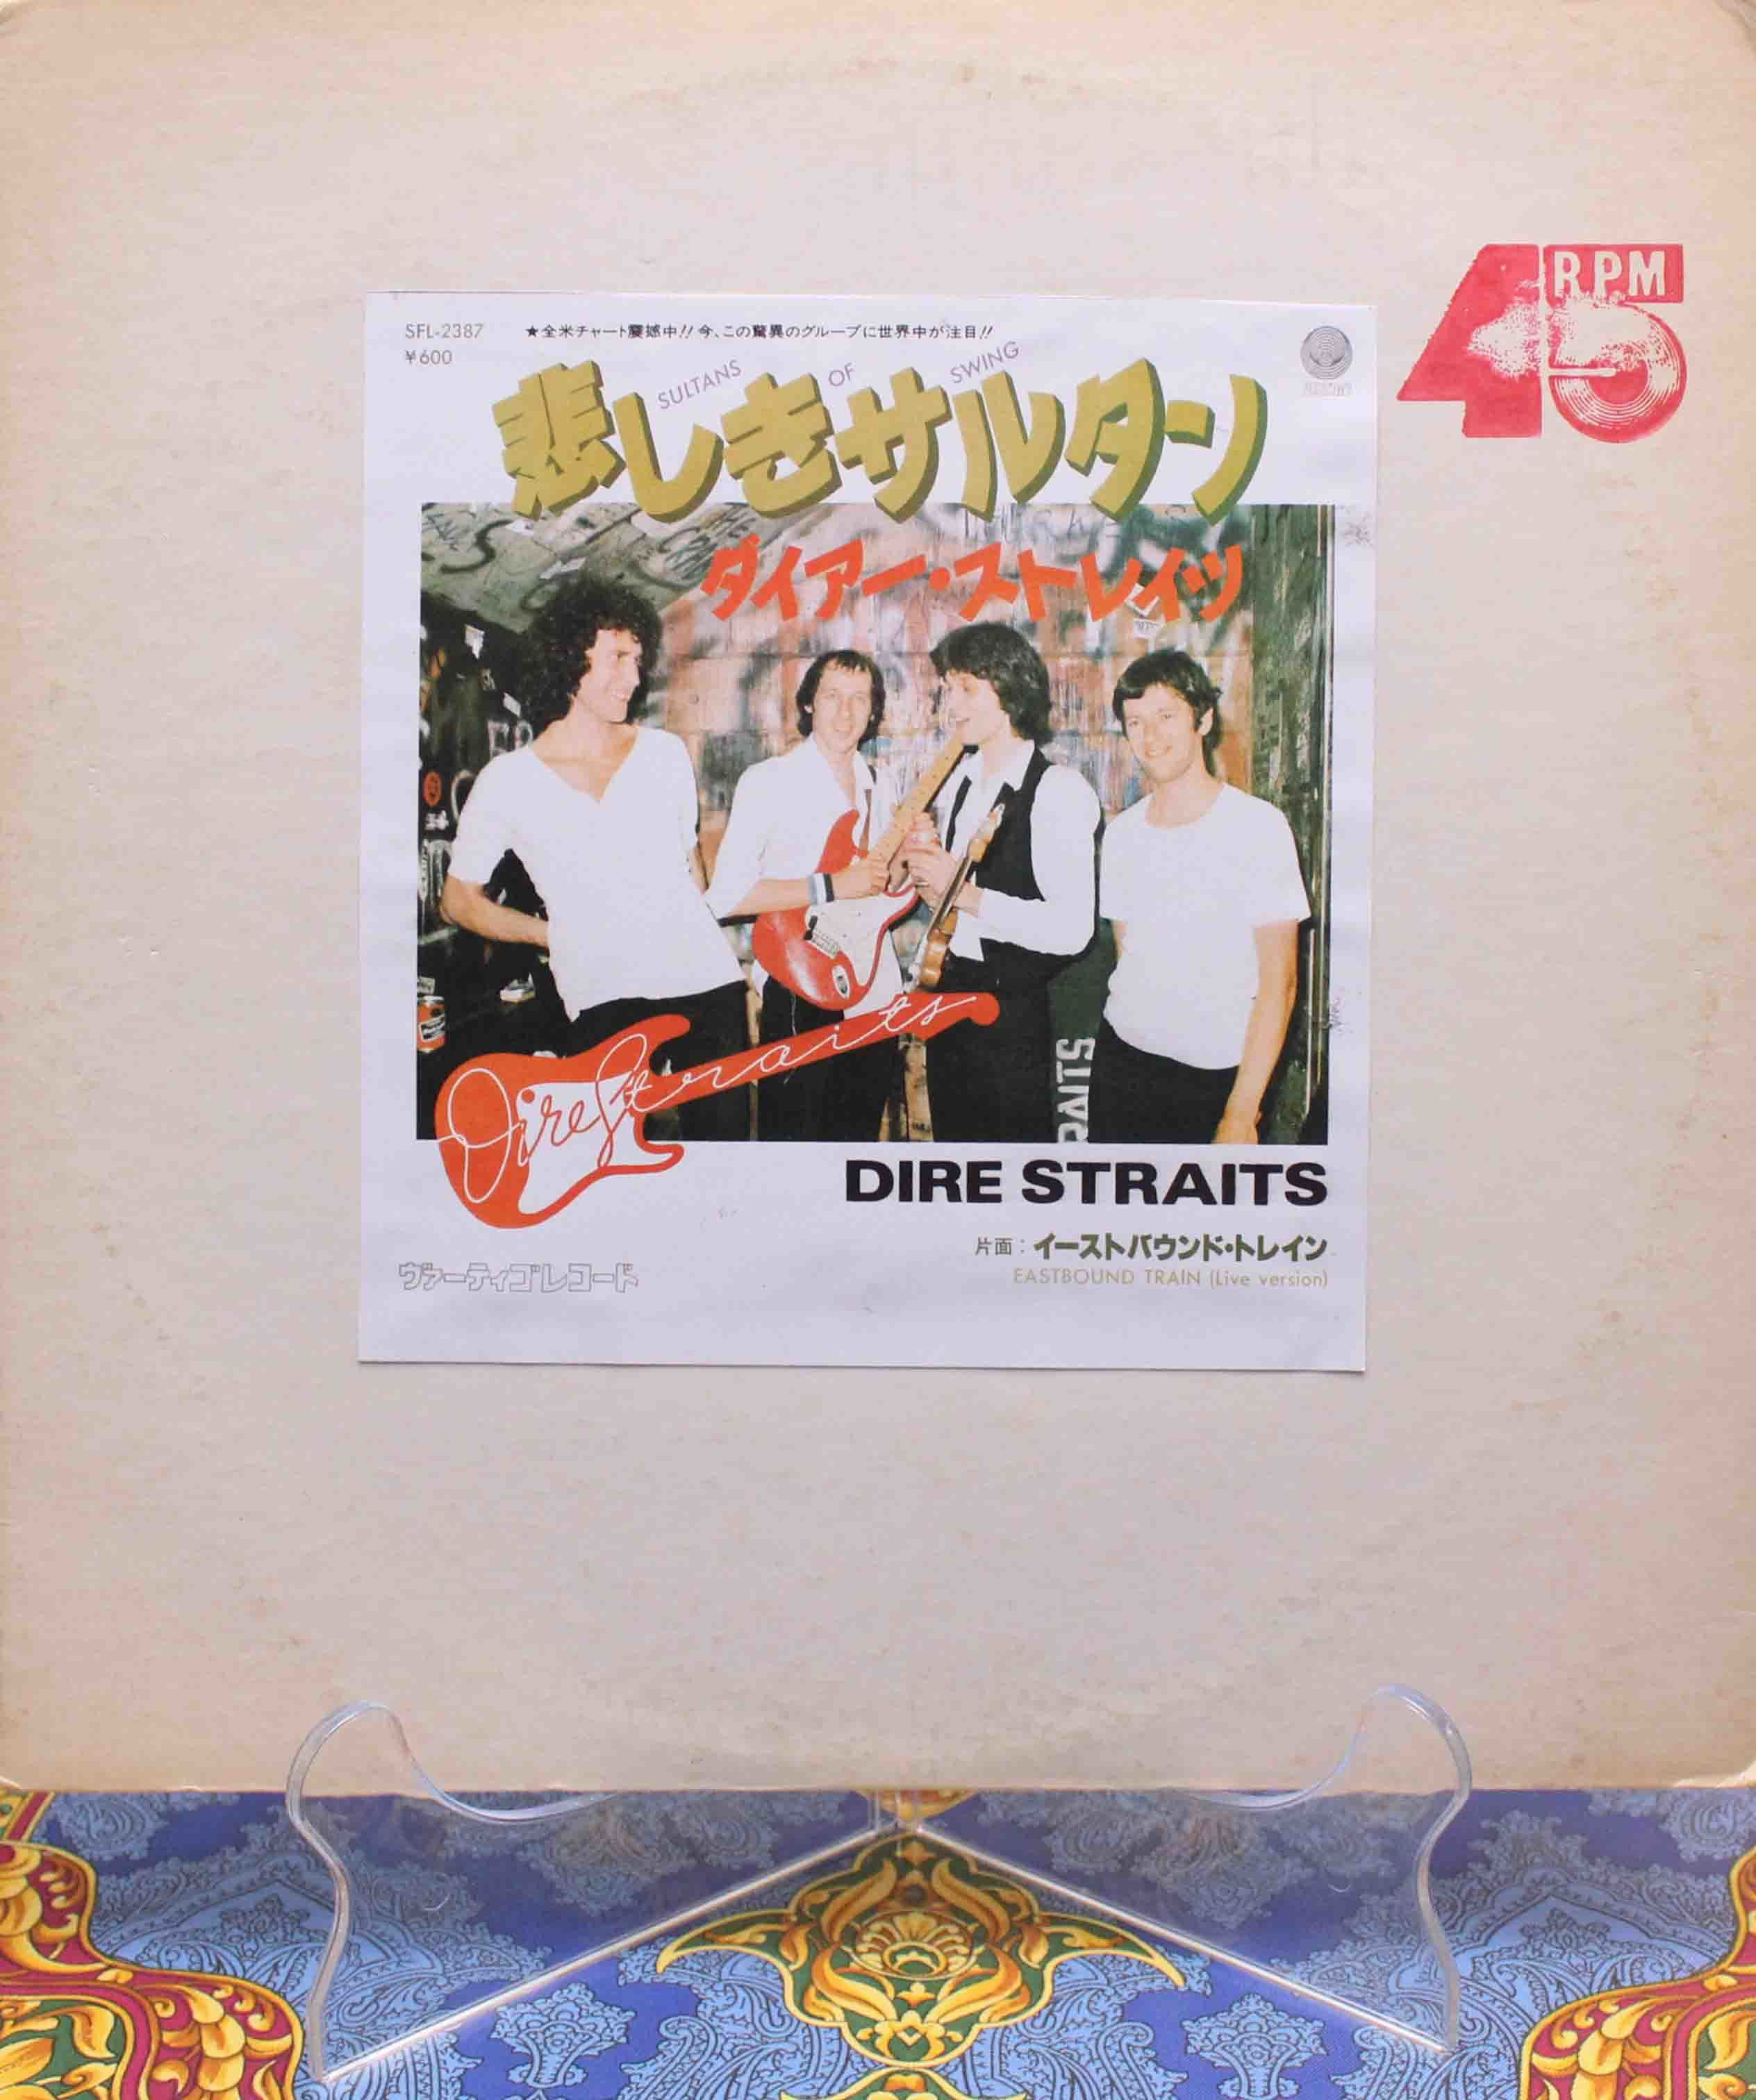 Dire Straits - Sultans of Swing Japan 01